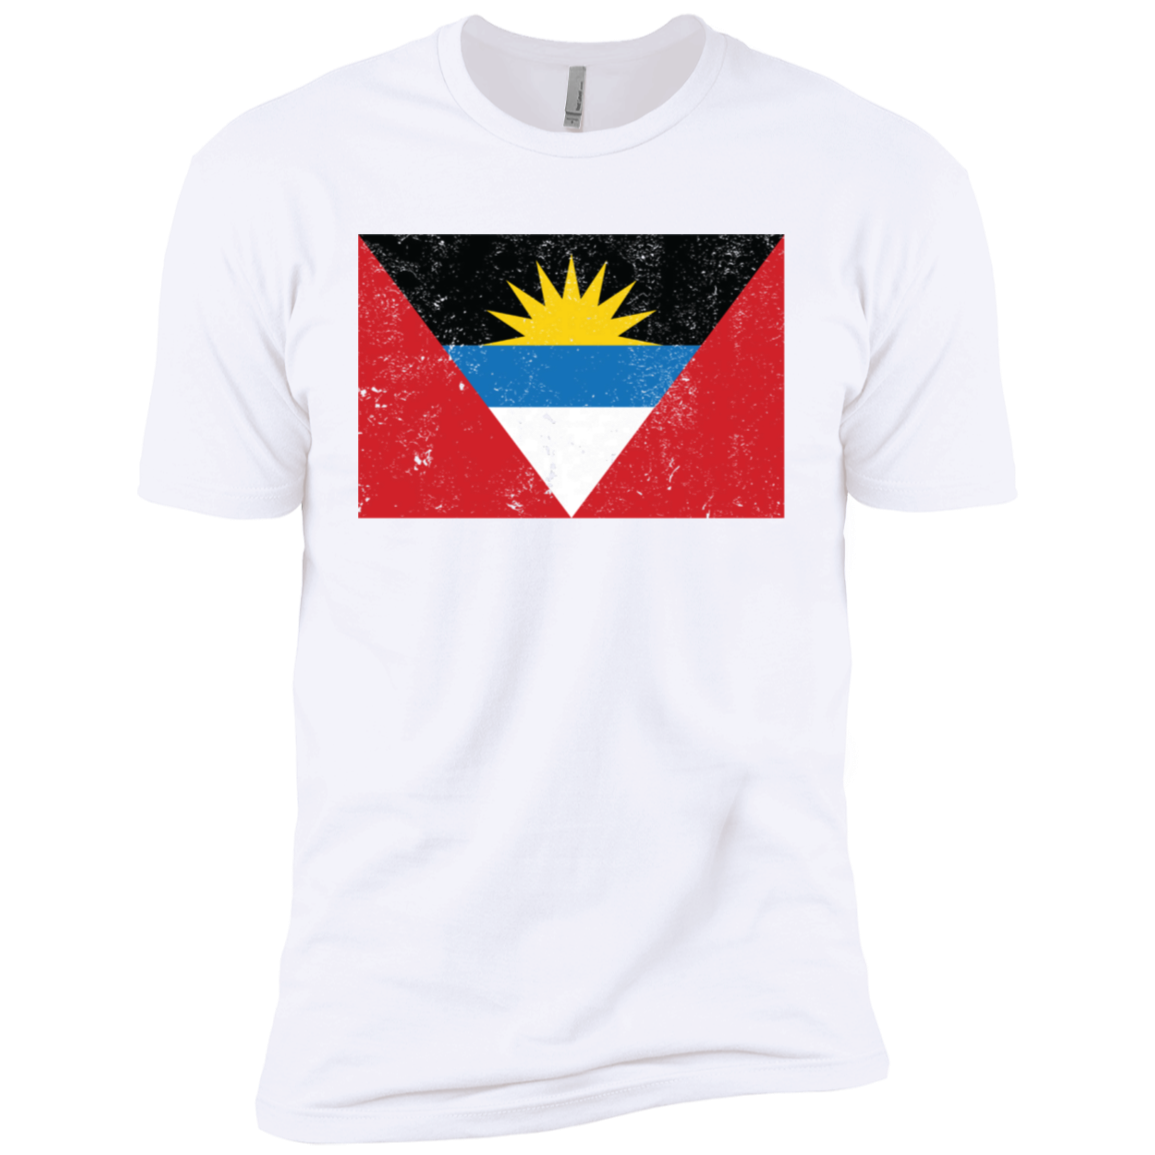 Antigua and Barbuda Men's Classic Tee